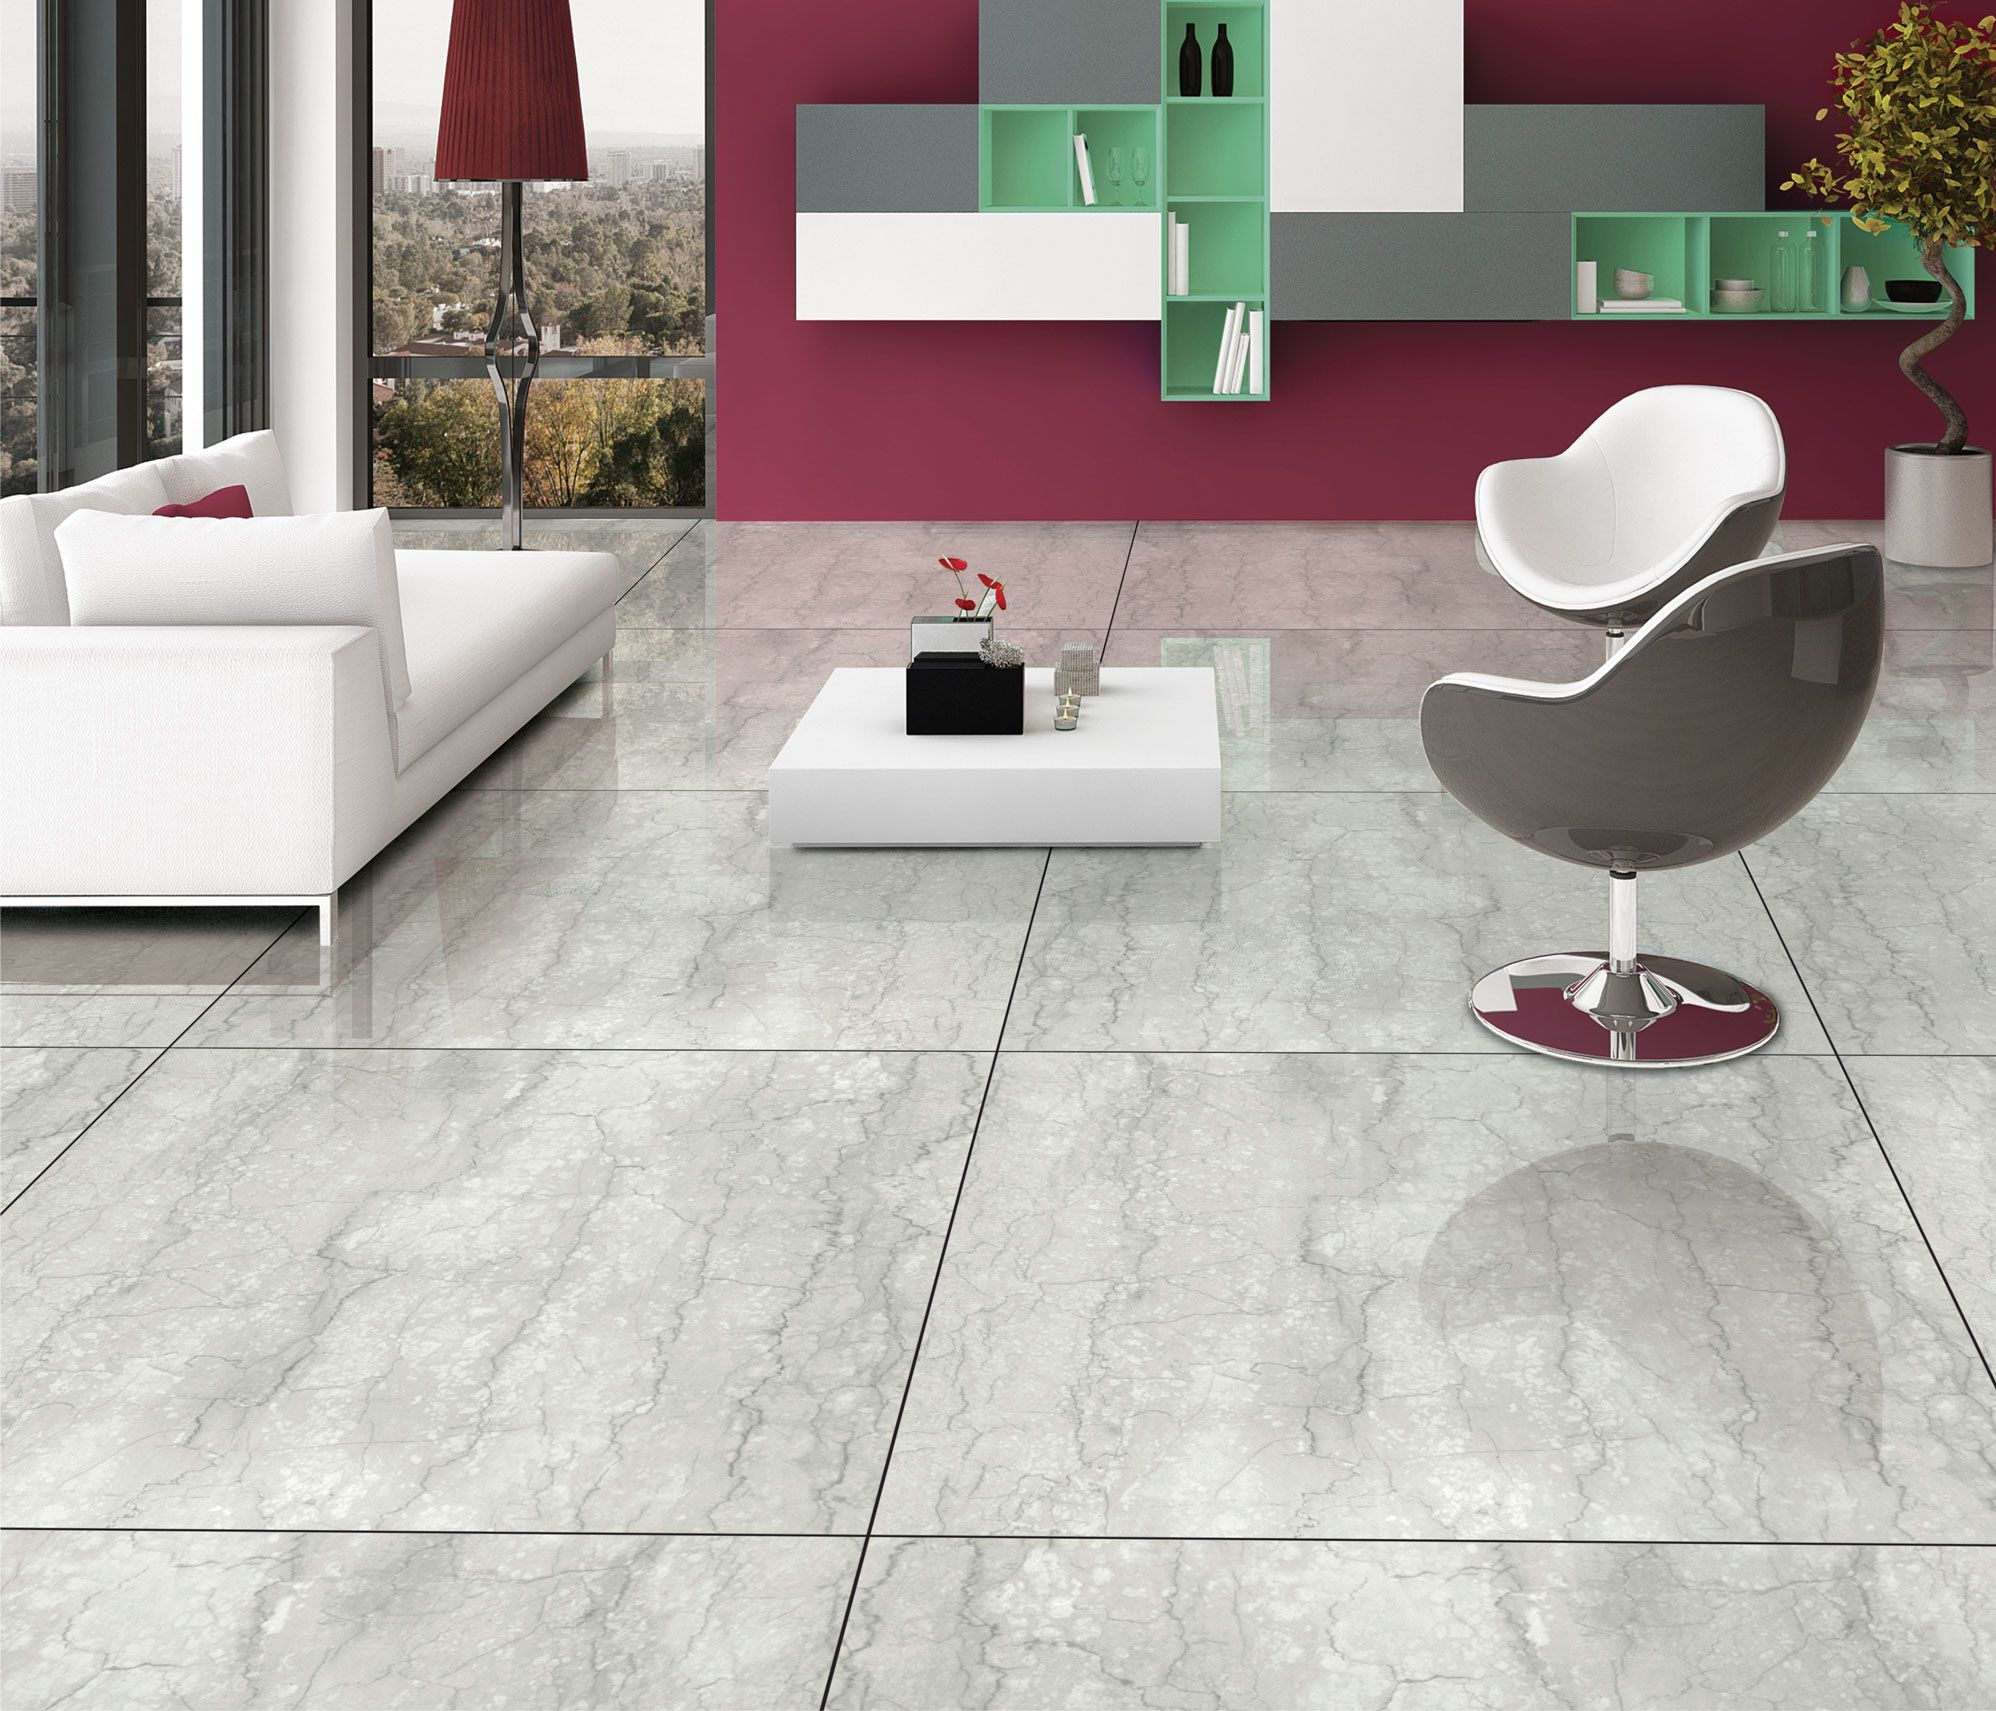 Rak nano pix bravo light grey bathroomtiles buy great mytyles offers a unique range of imported floor and wall tiles online check out our beautiful collection latest designs of stylish ceramic tiles dailygadgetfo Gallery